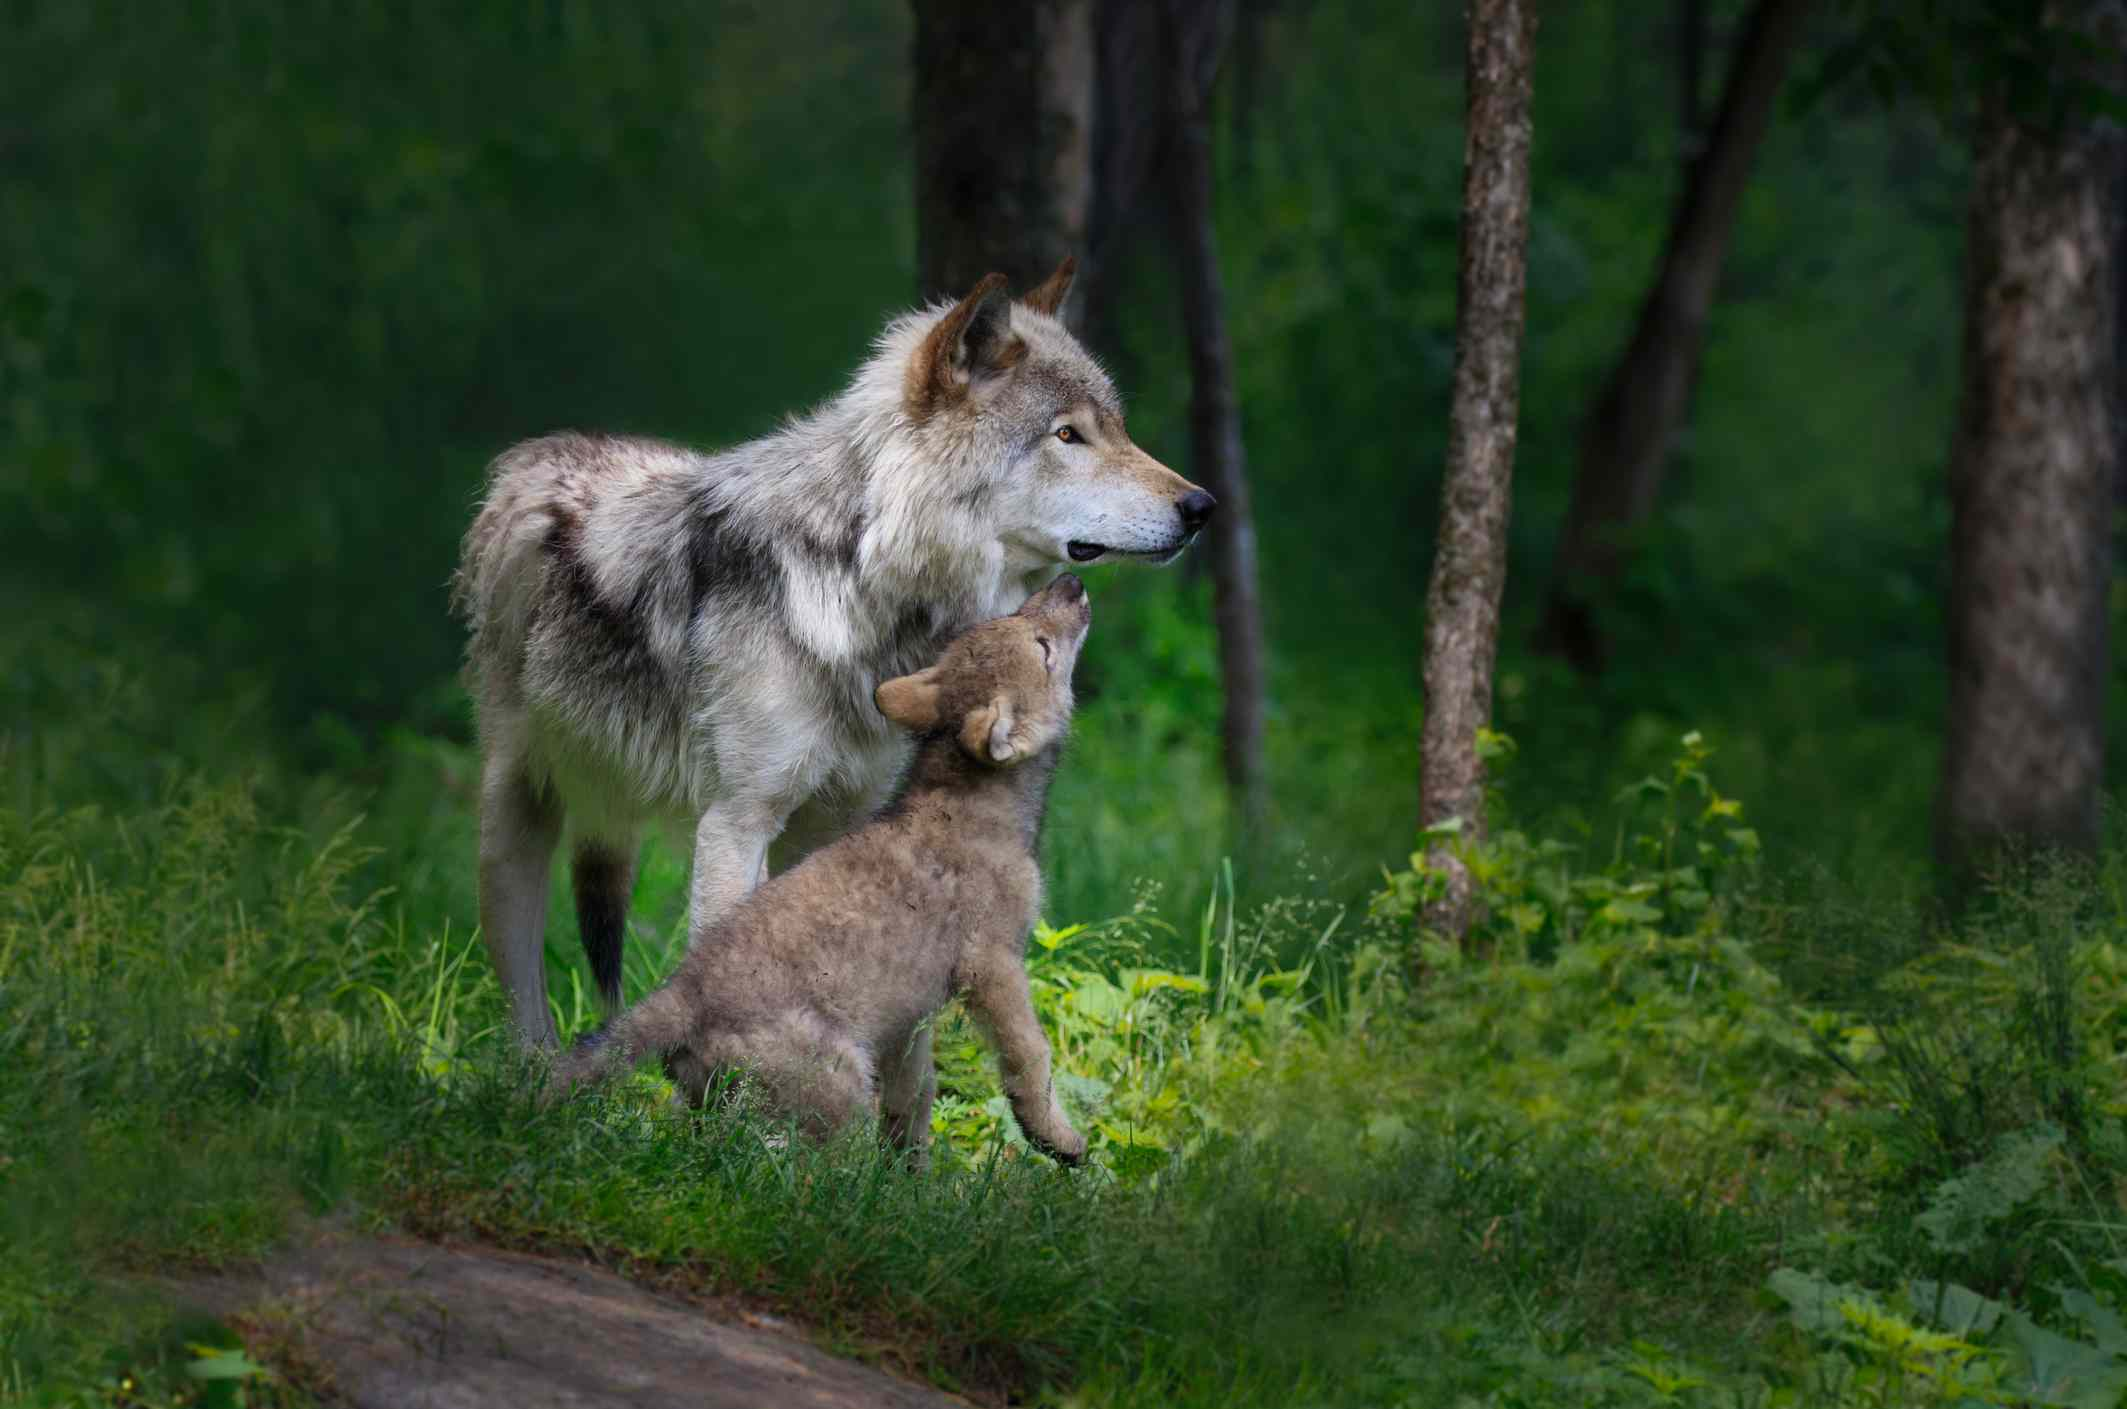 Gray wolf mother with her young pup standing in a forest and tall green grasses